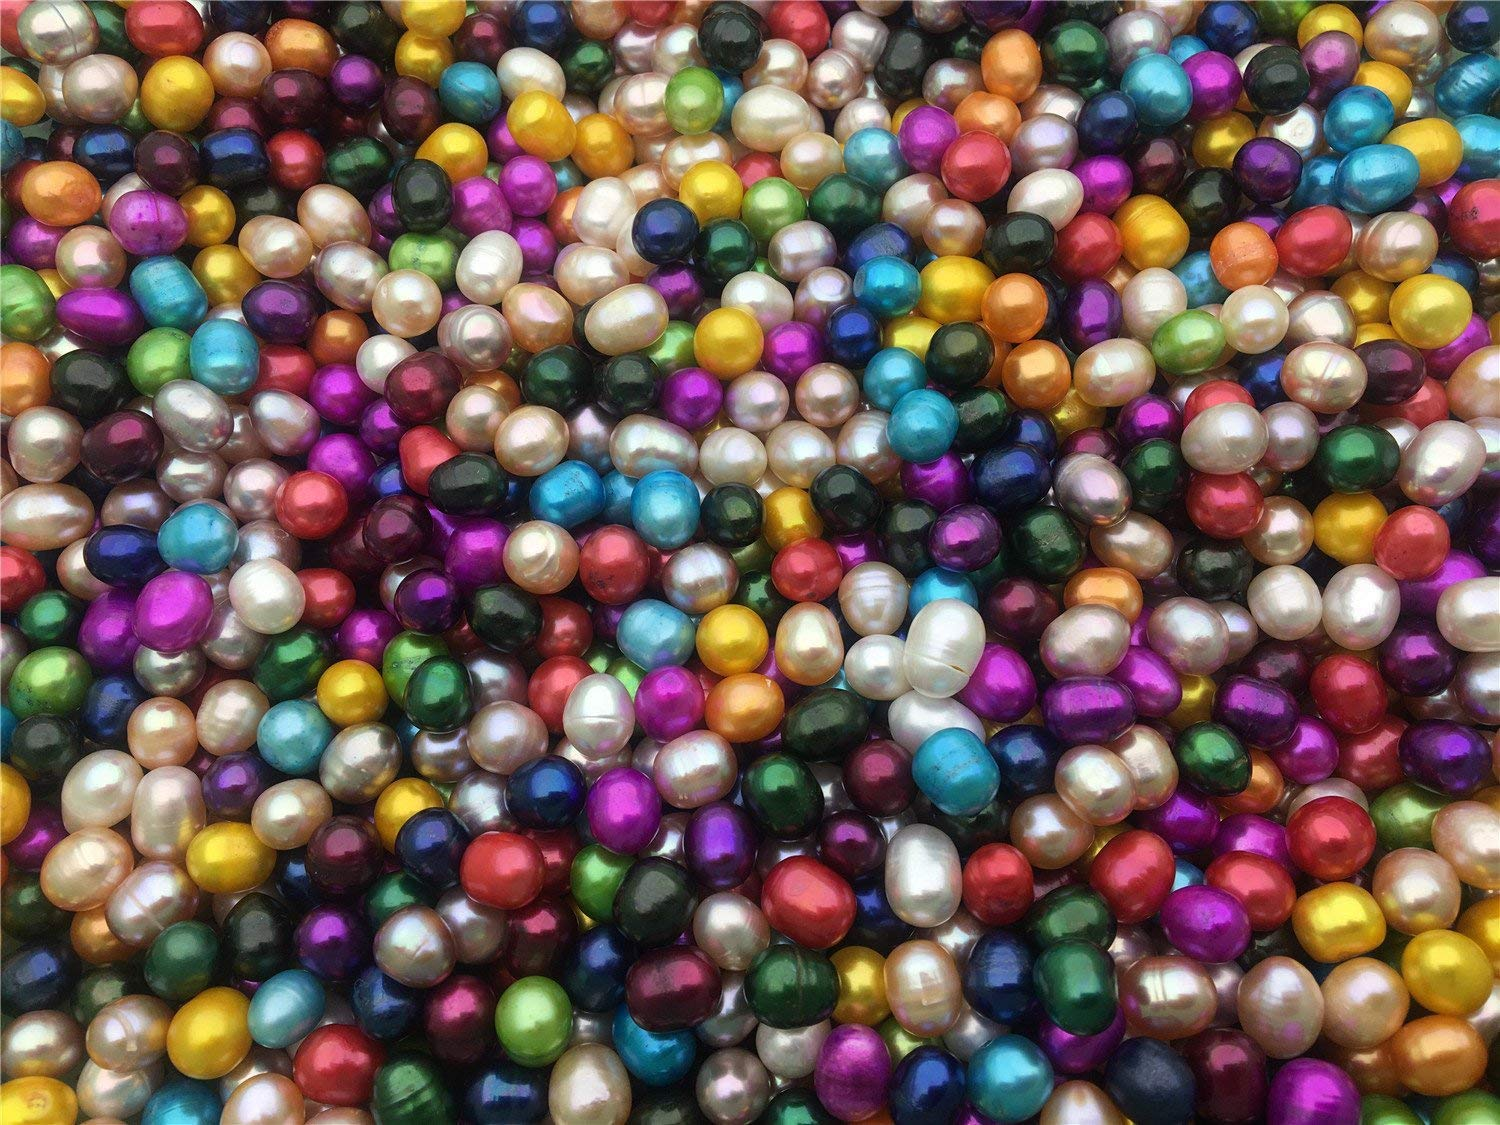 30pcs AA 7.5-8.5mm Multi Color Rice Cultured Freshwater Pearl Loose Pair Beads,Wholesale,OY-LR8-2A-2 (1:No Hole)